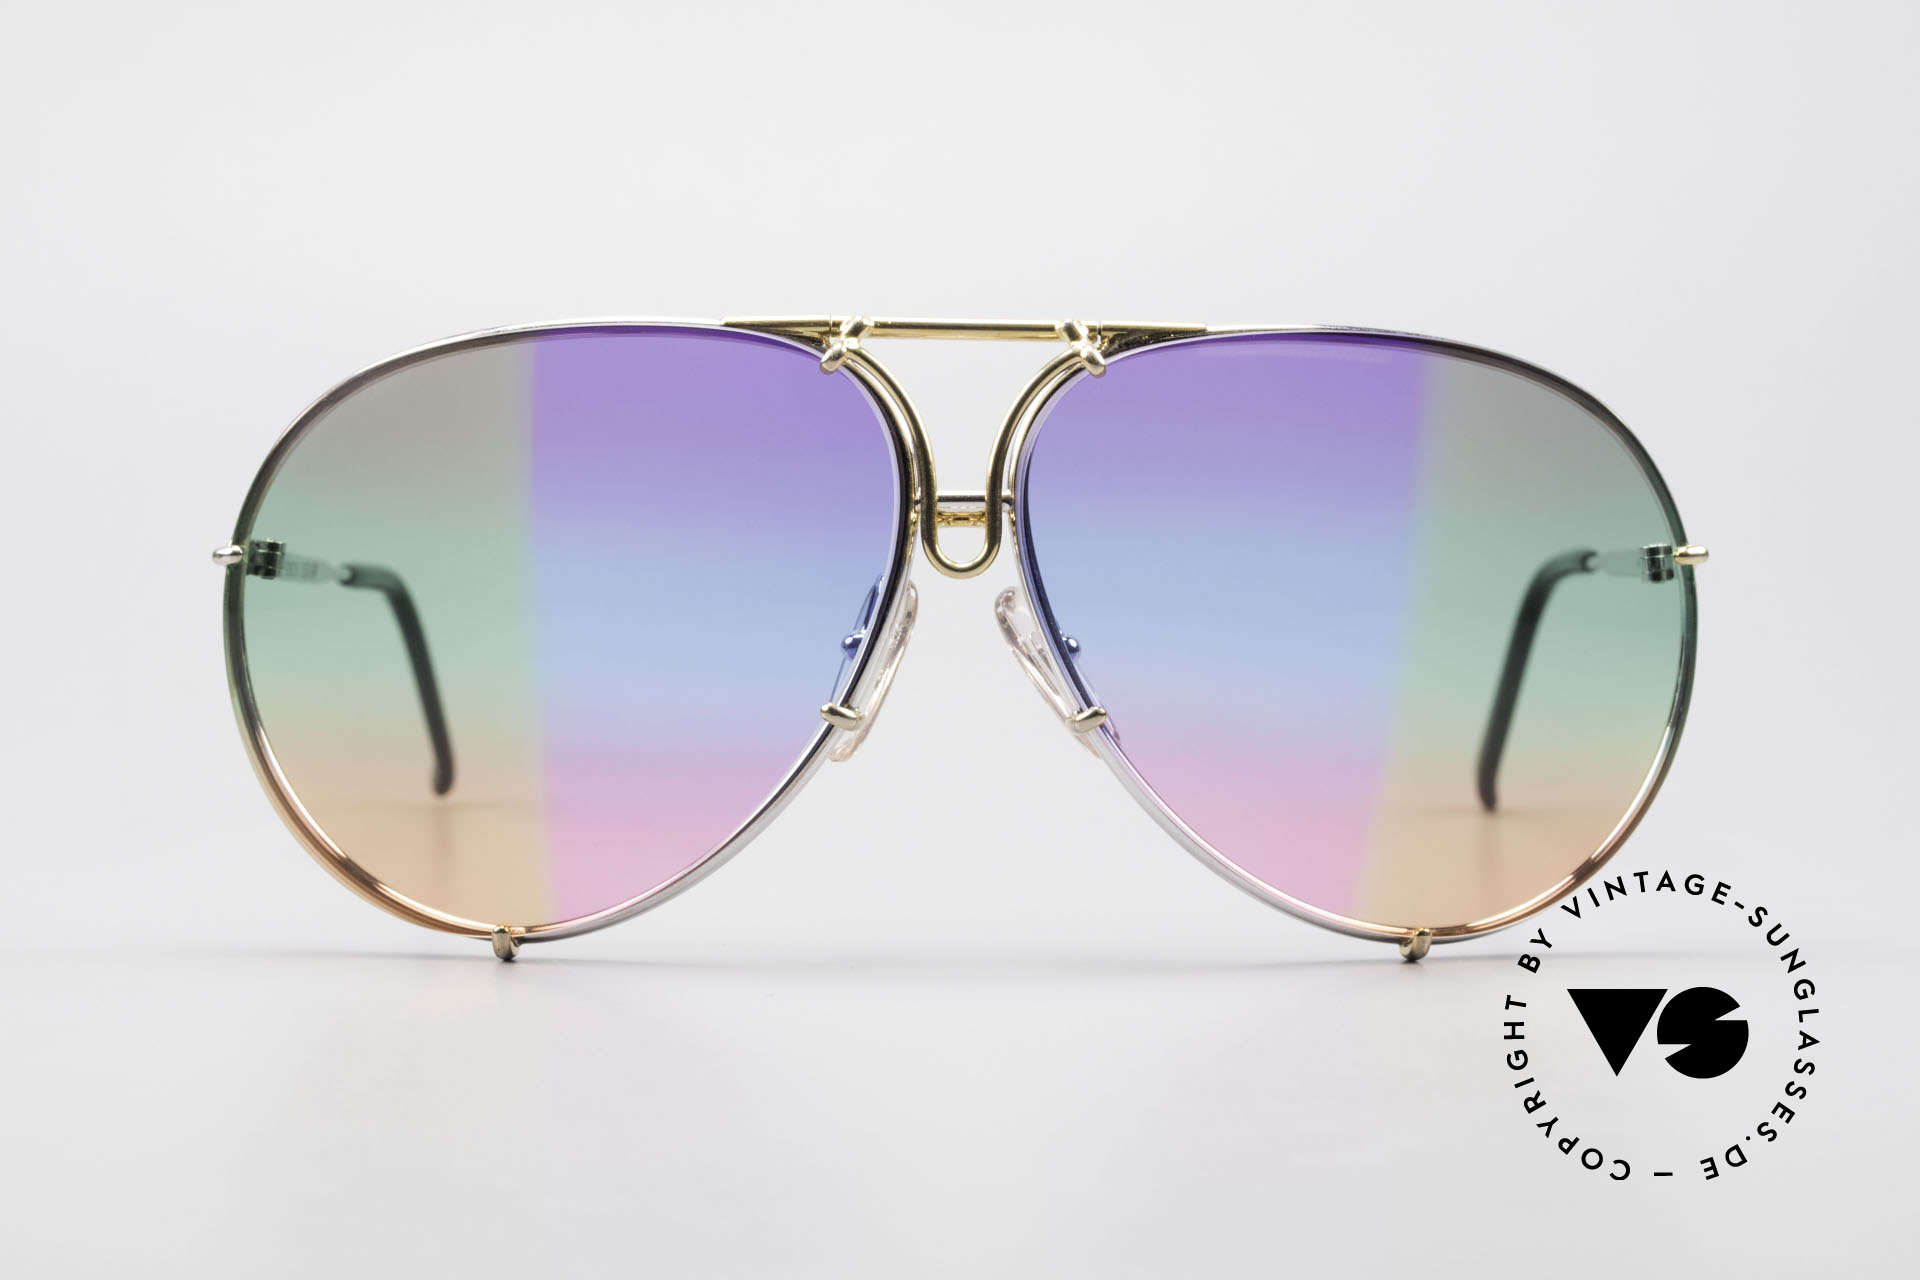 Porsche 5623 One Of A Kind 6times Gradient, the legendary classic with the interchangeable lenses, Made for Men and Women